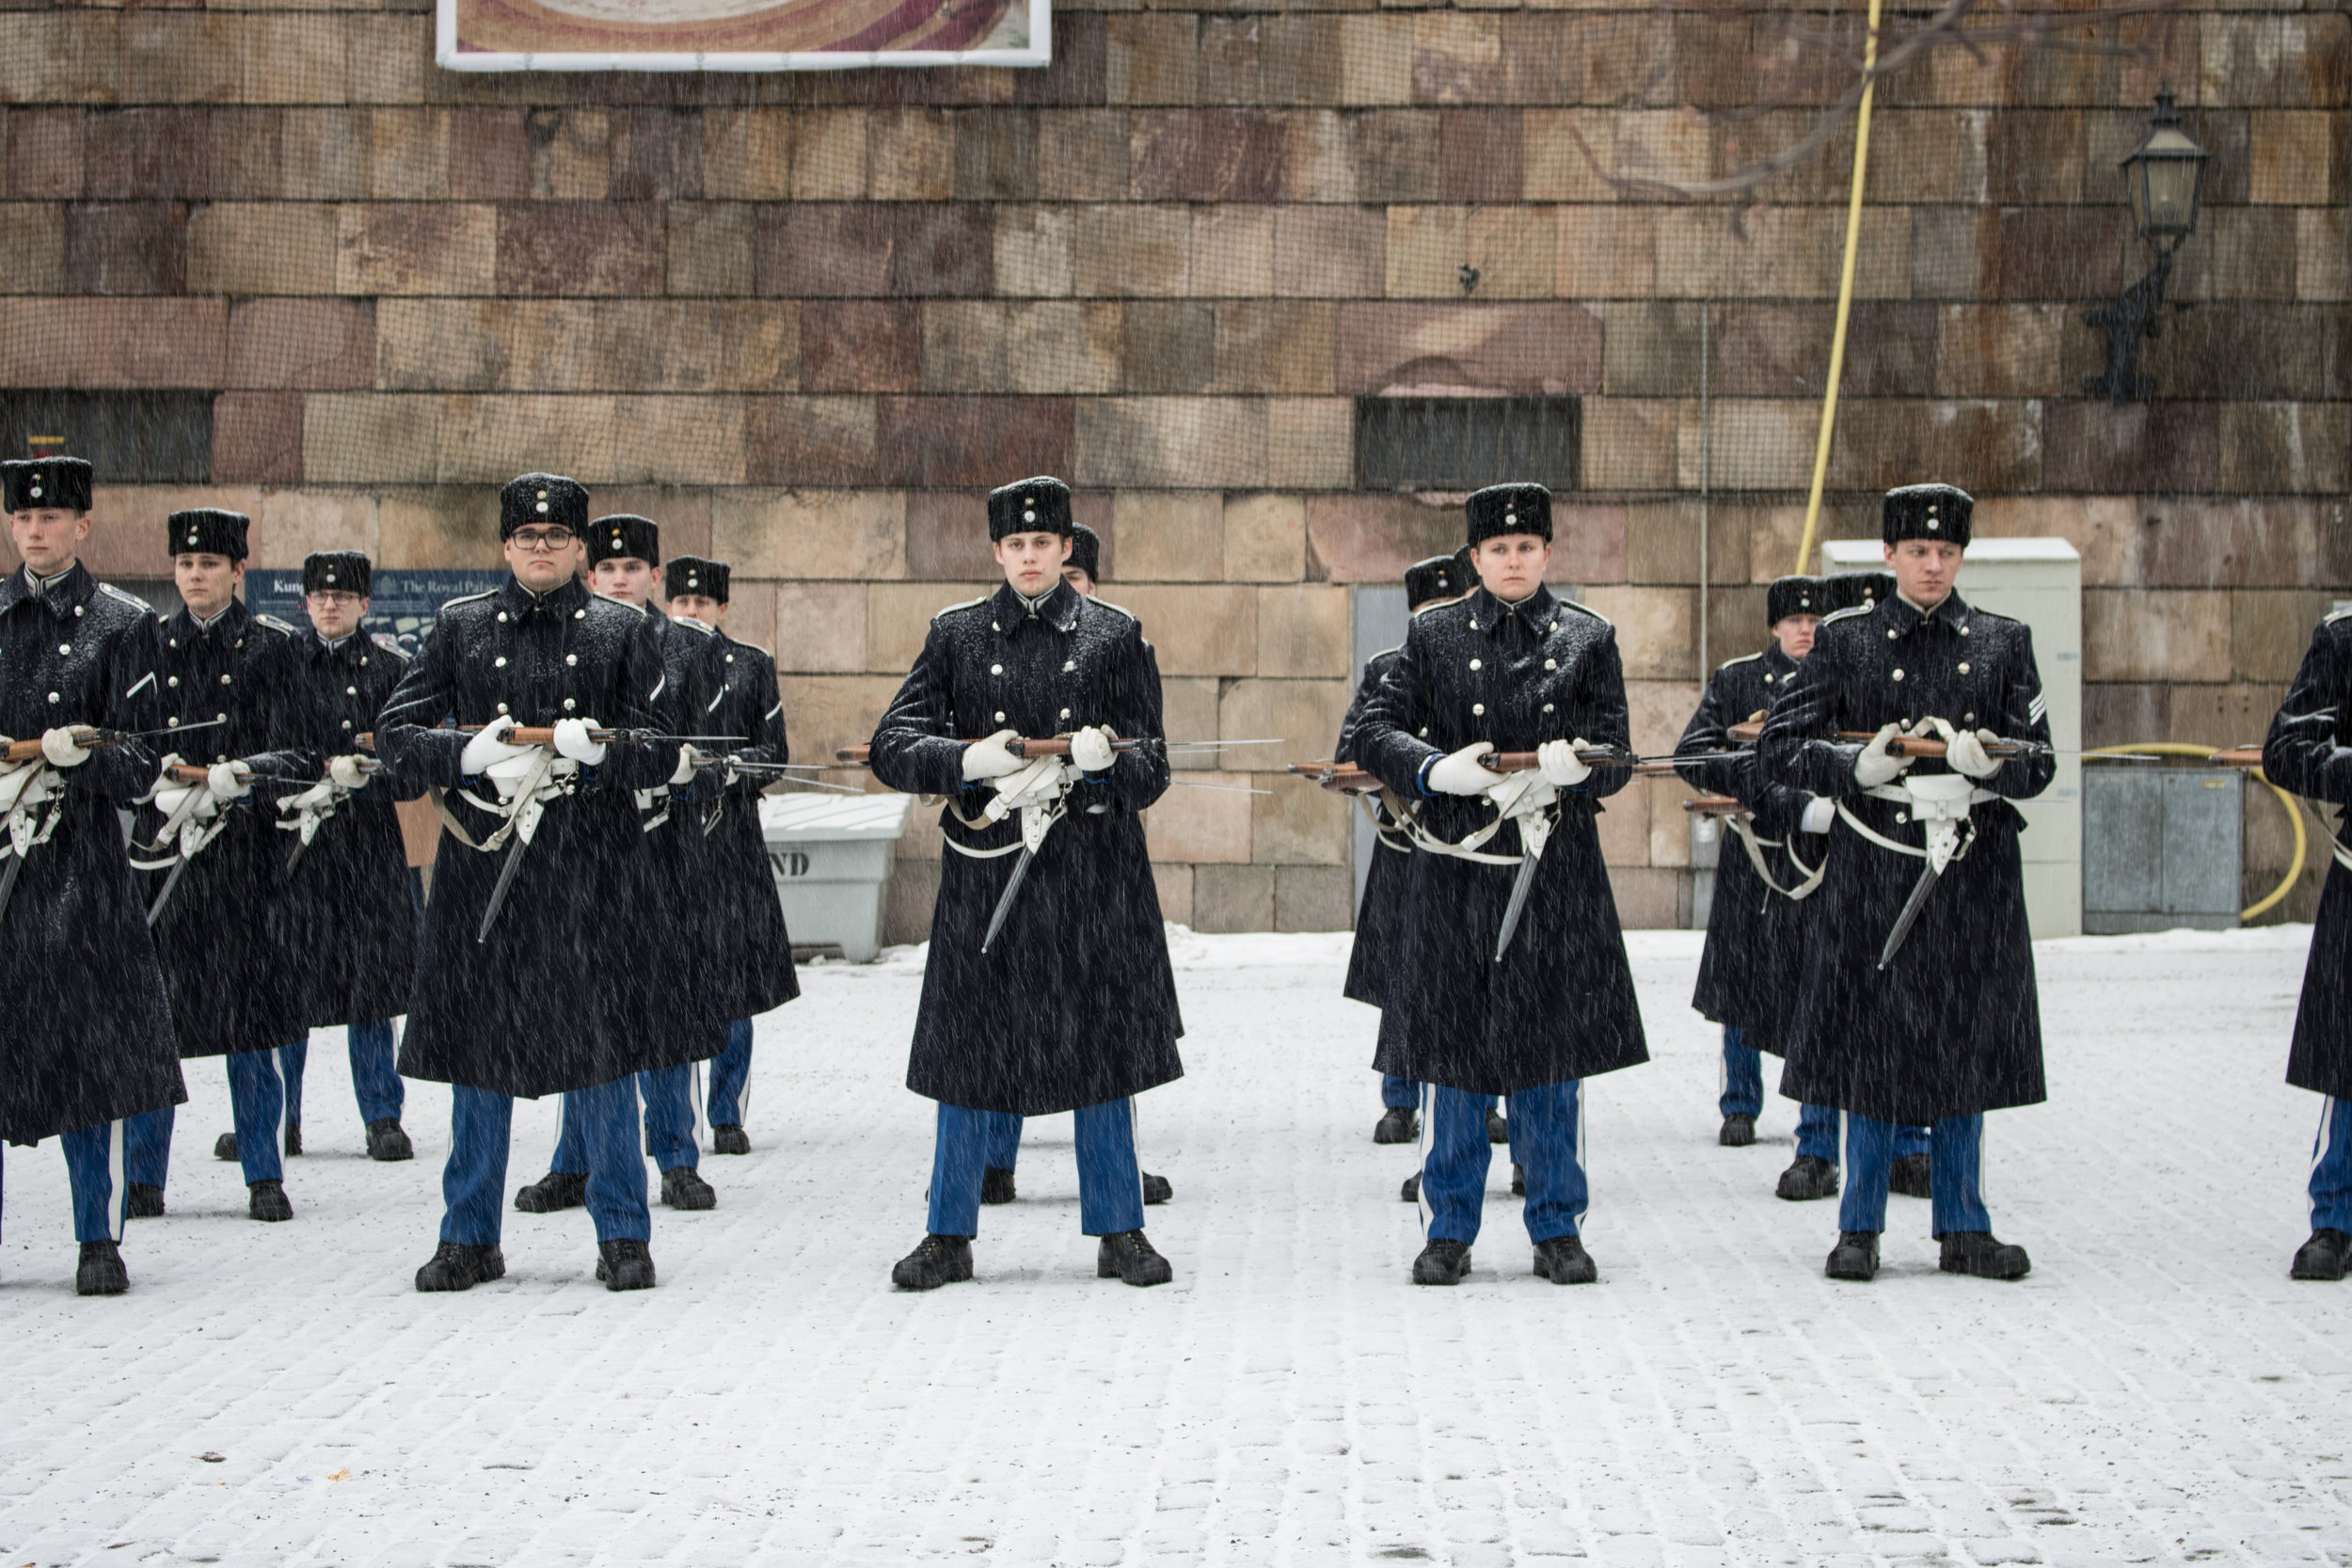 Guard change at the Royal palace with light snow flurries.